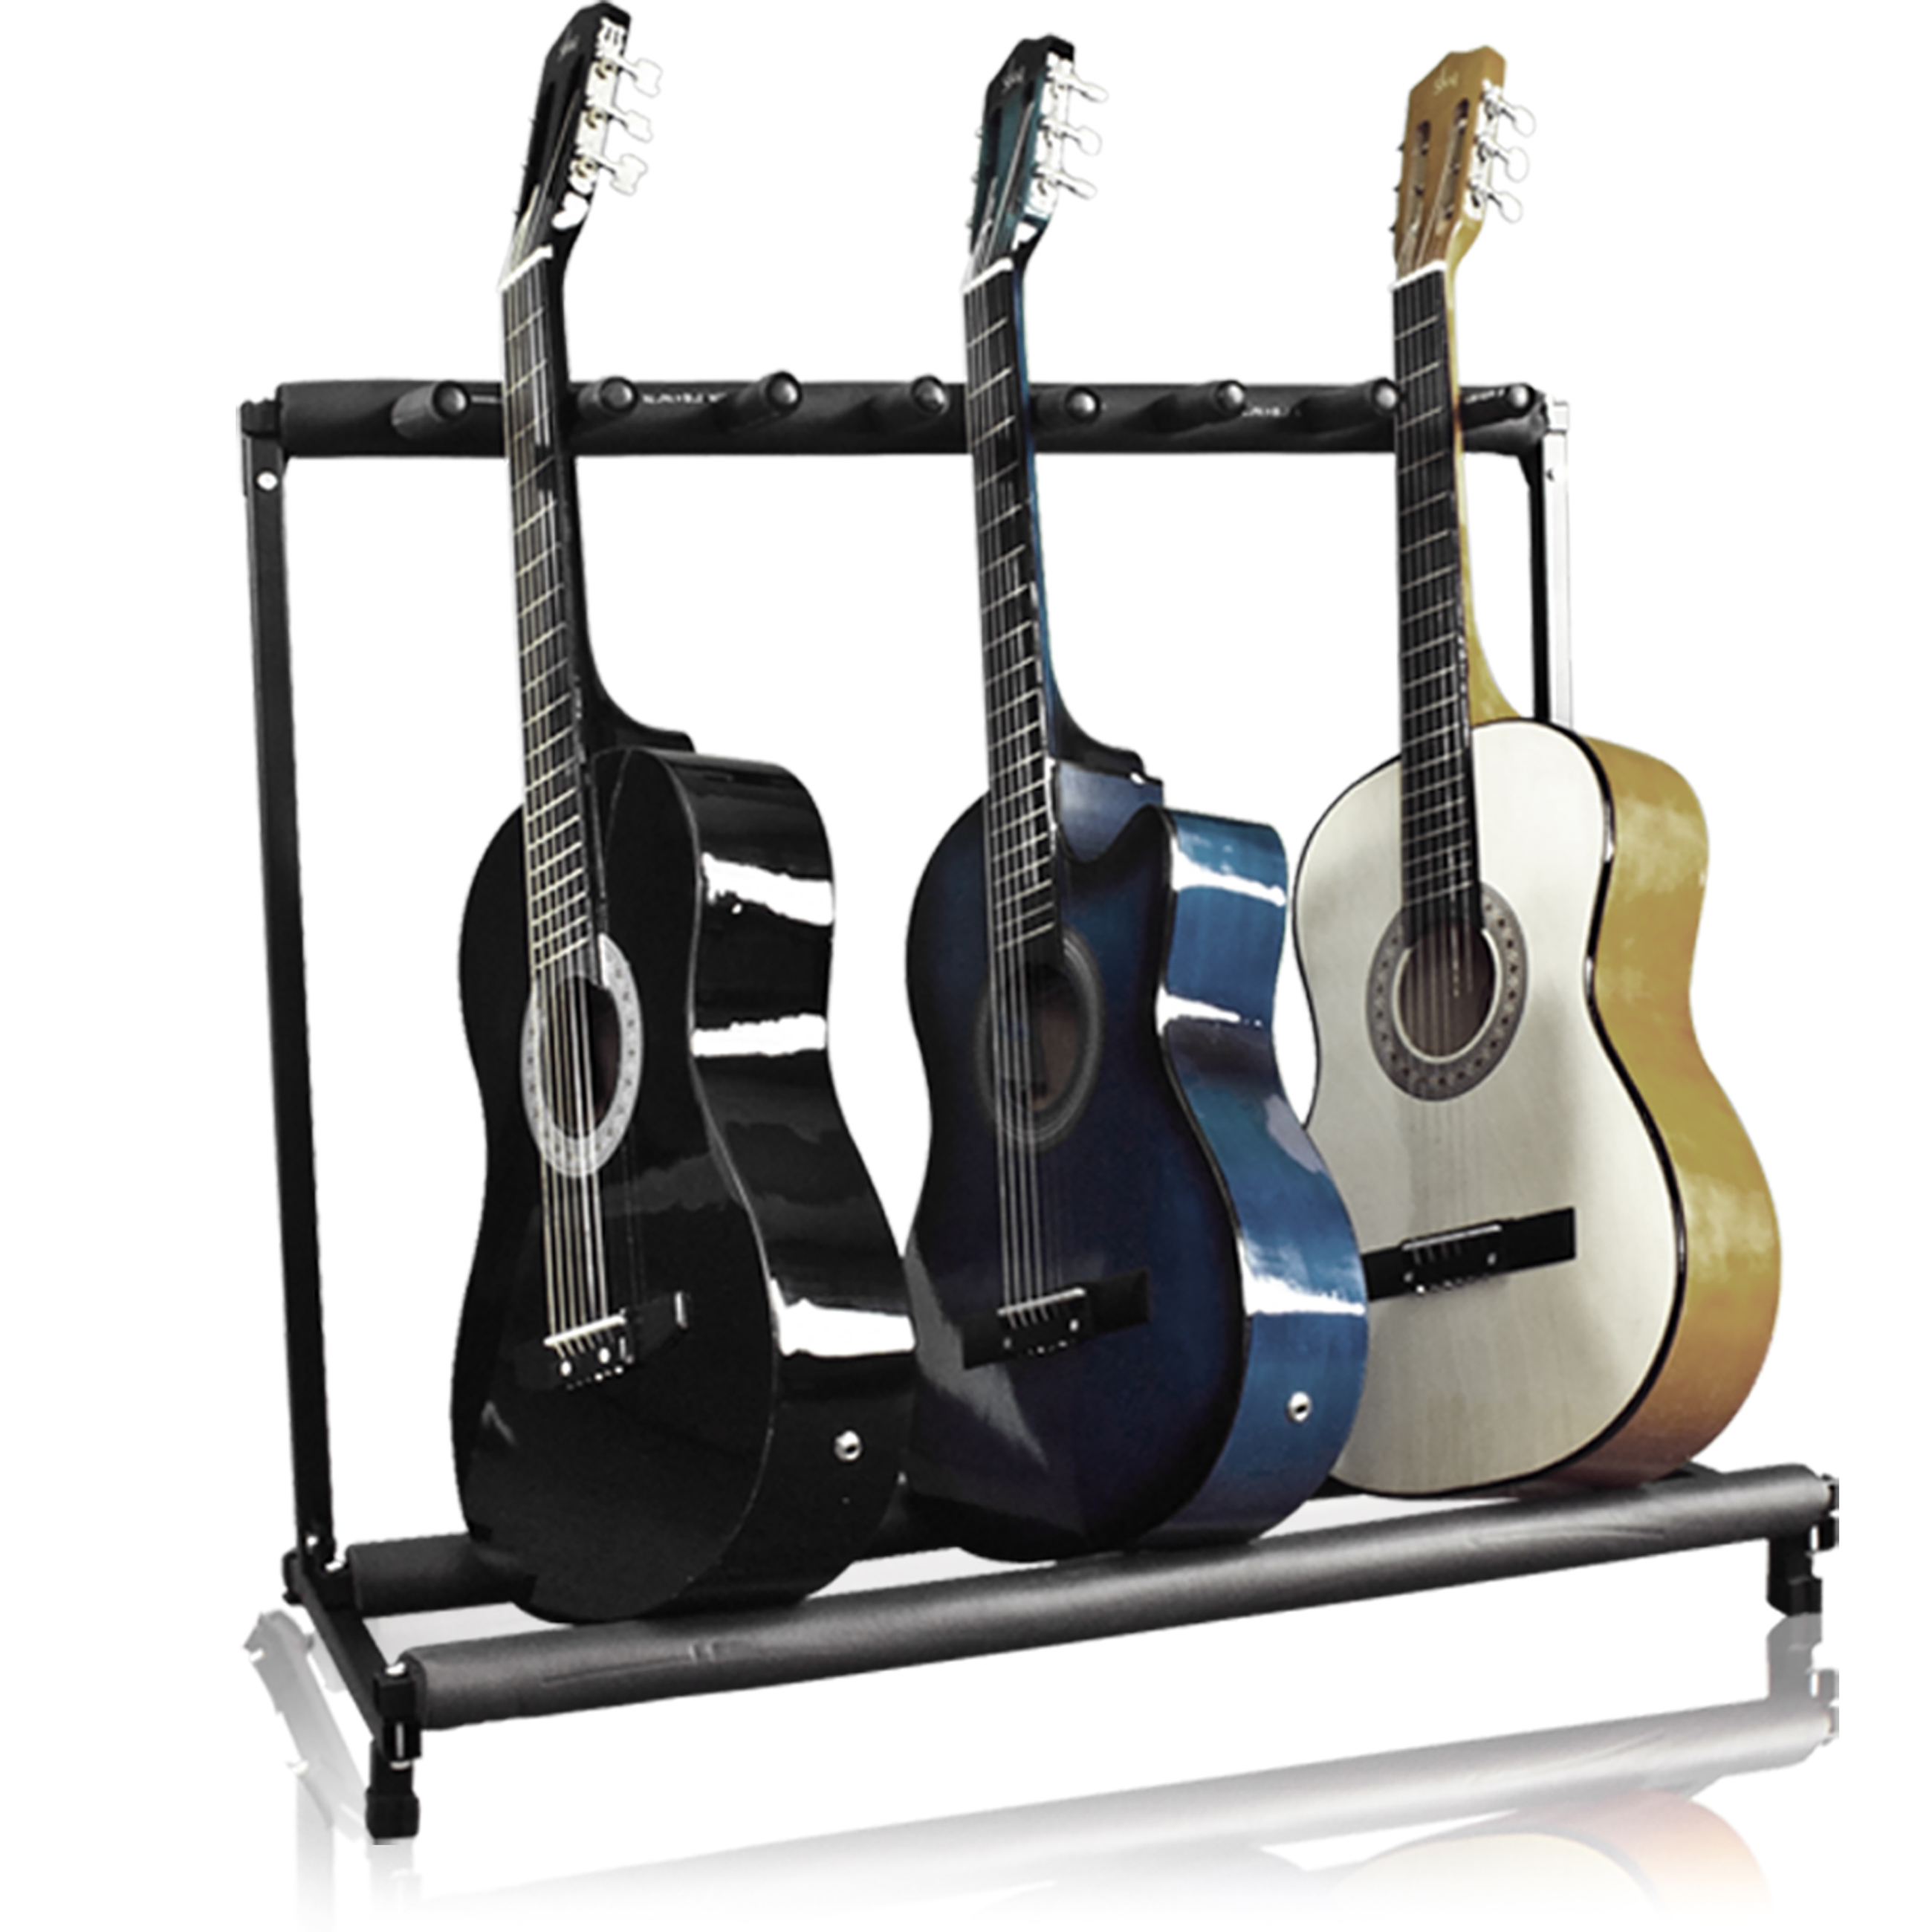 Felji 7 Guitar Stand Folding Rack | Folds Up For Easy Transport | Neoprene Tubing For Protection | Ideal For Music Bands, Recording Studios, Schools, Stage Performers & Artists